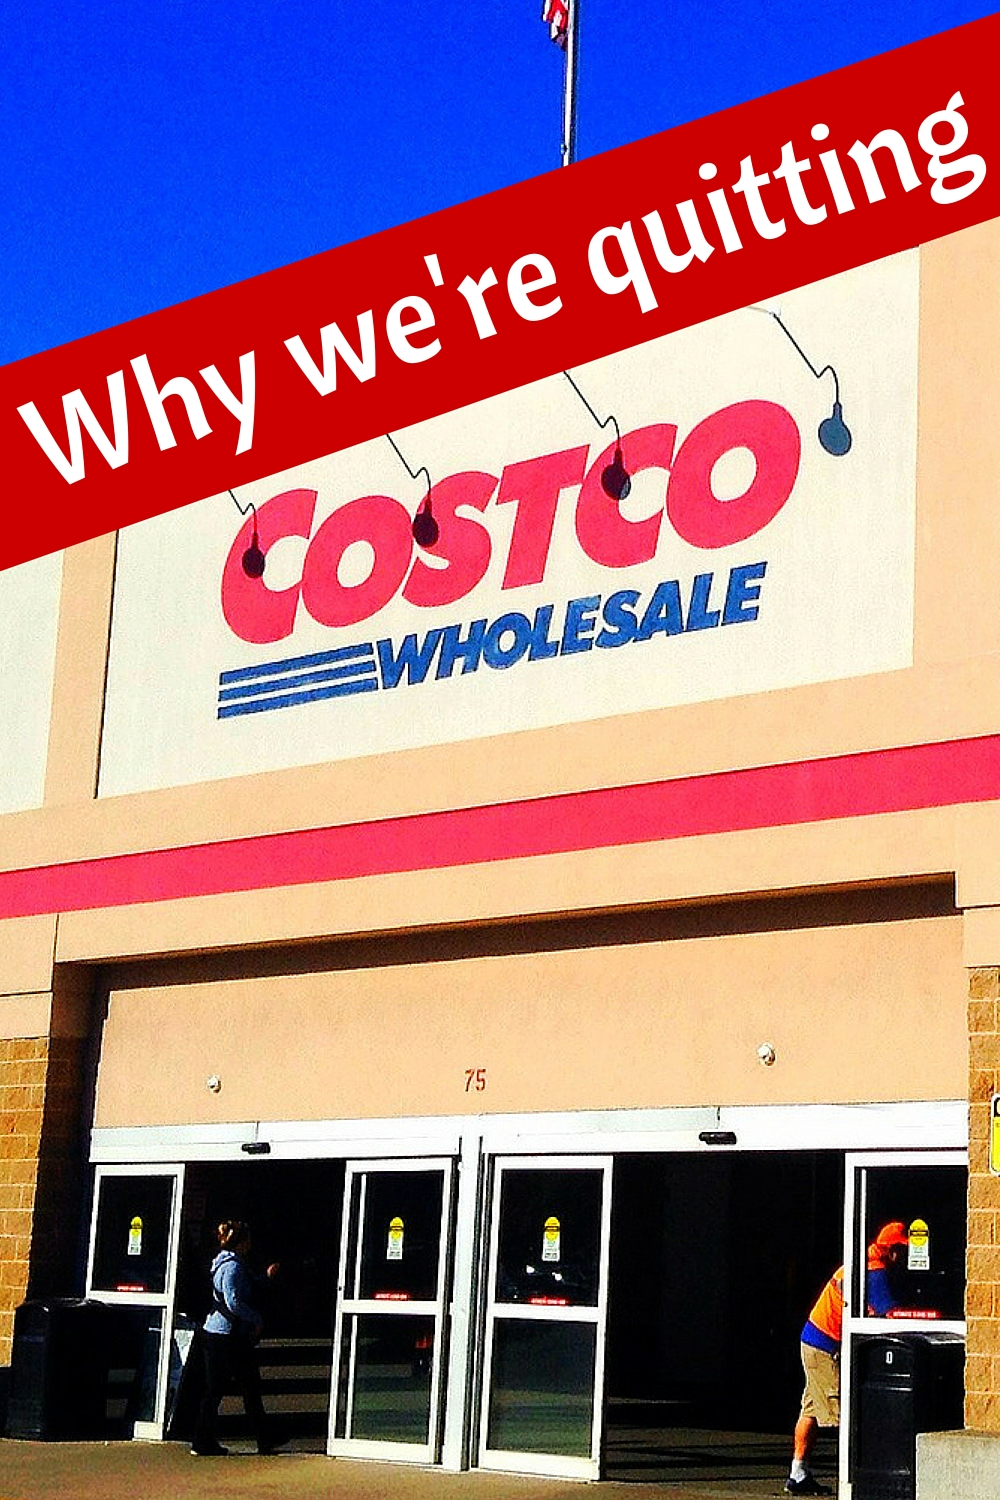 Costco can be a great frugal hack to save money. But here's why it's not worth it for us anymore.